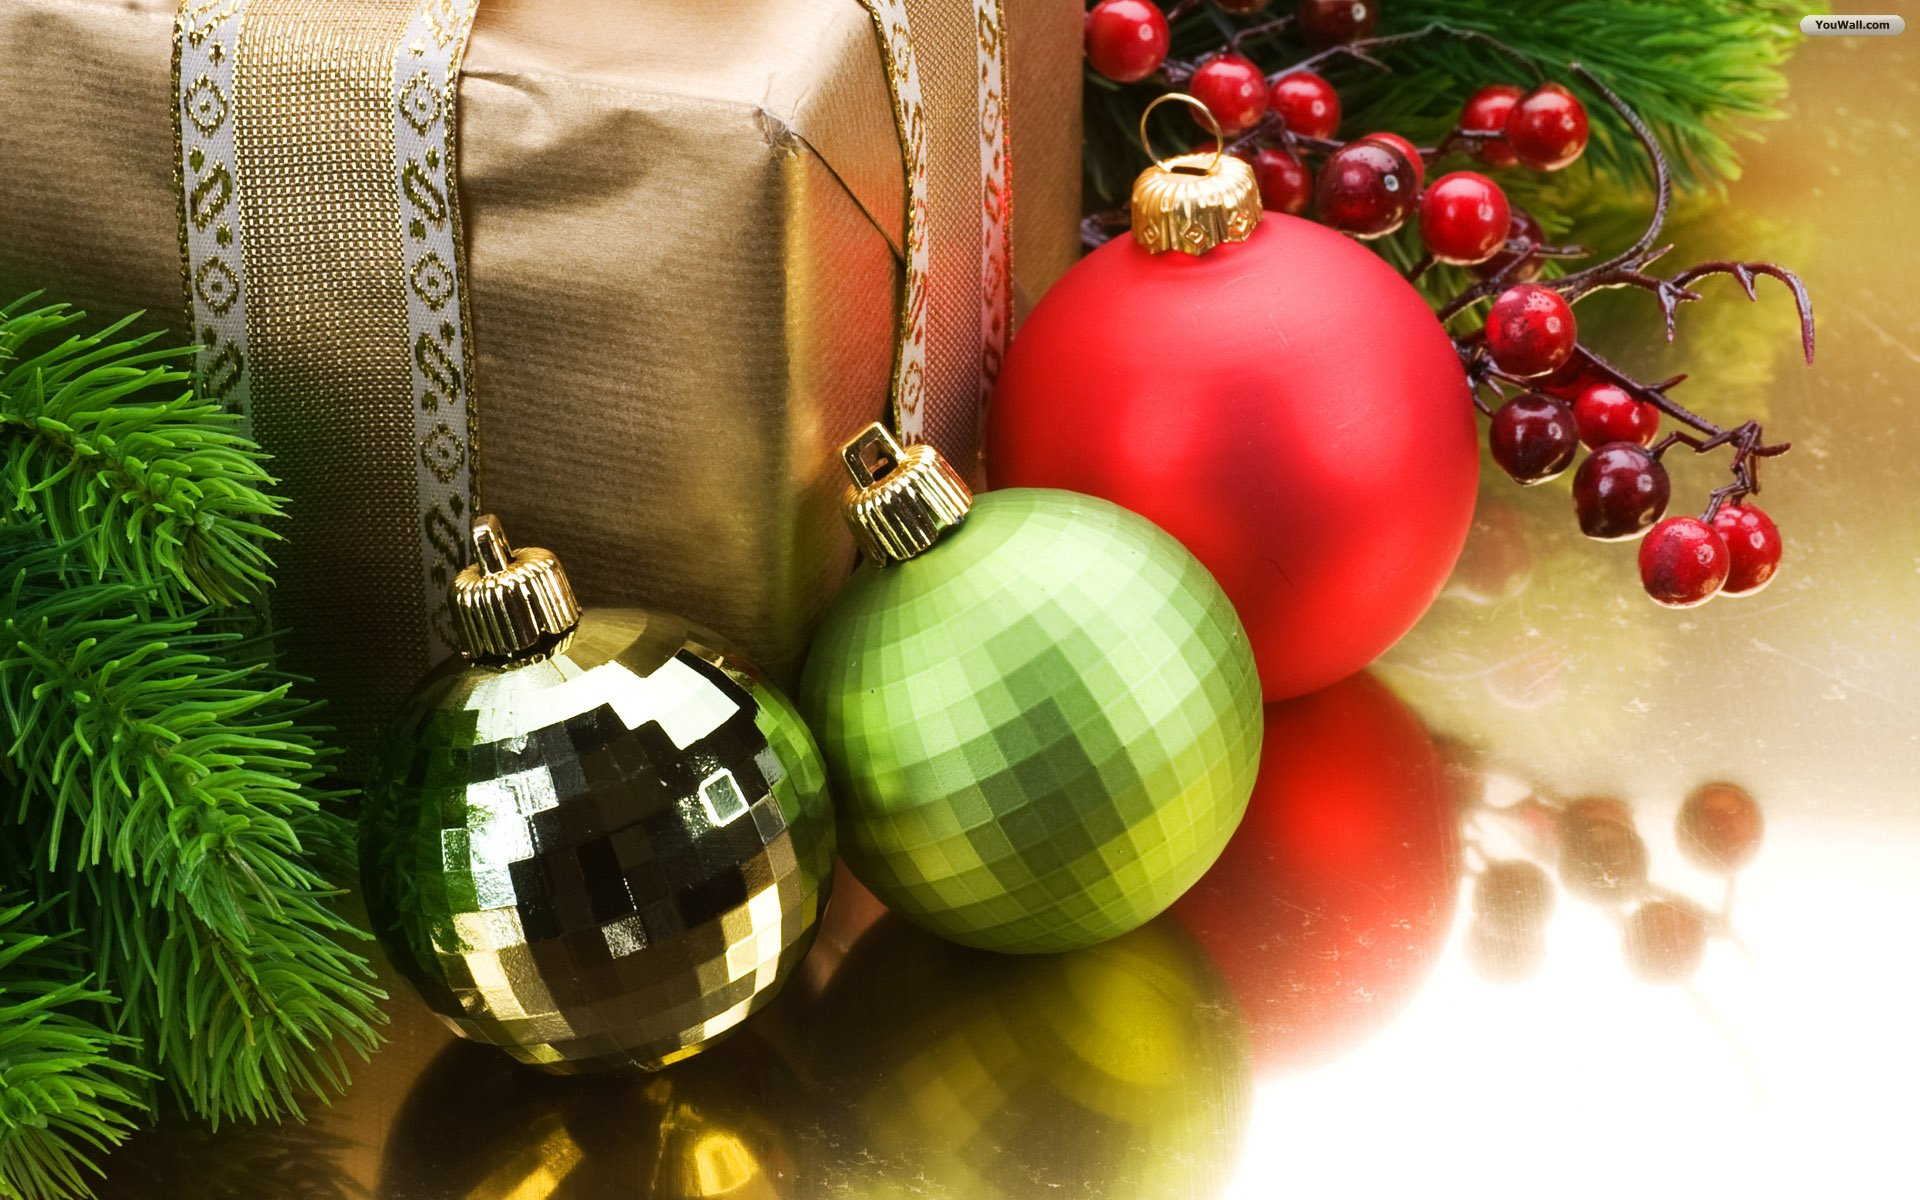 These wallpapers are high definition and available in wide range of sizes and resolutions. Download Christmas Ornaments Wallpapers absolutely free for your ...